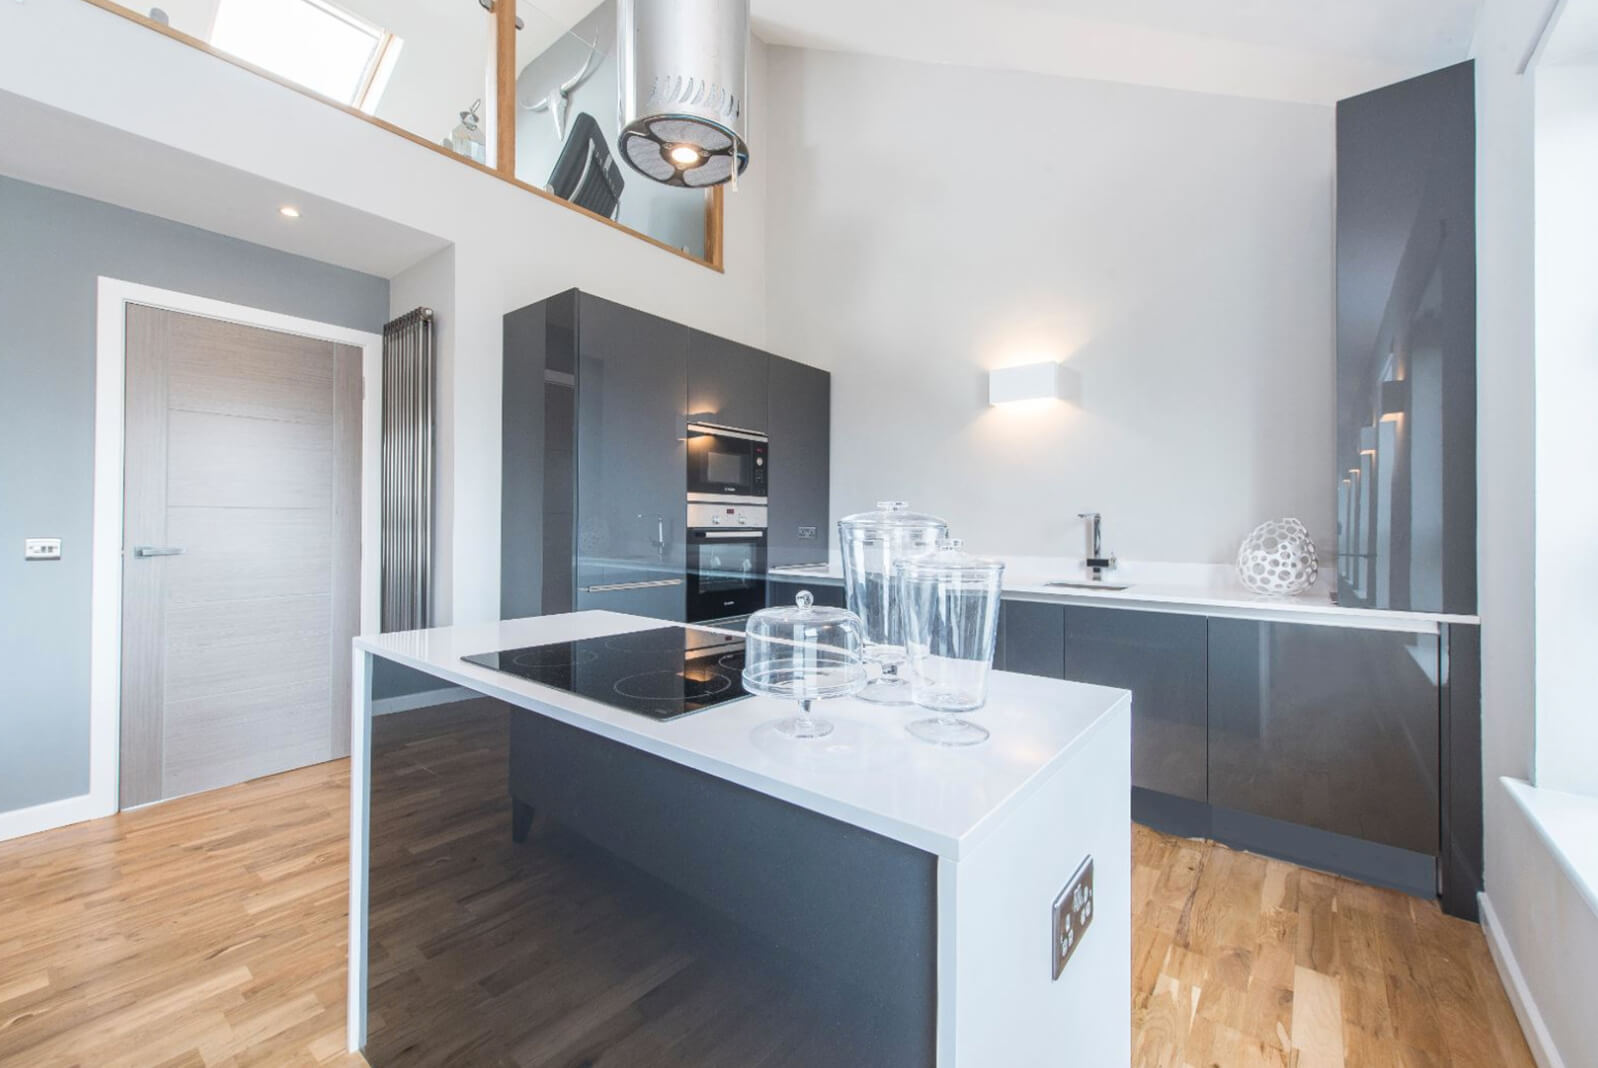 Modern open plan kitchen with grey, high gloss units and integrated appliances. Island unit with ceramic hob and modern, hanging extractor fan. Wooden flooring.